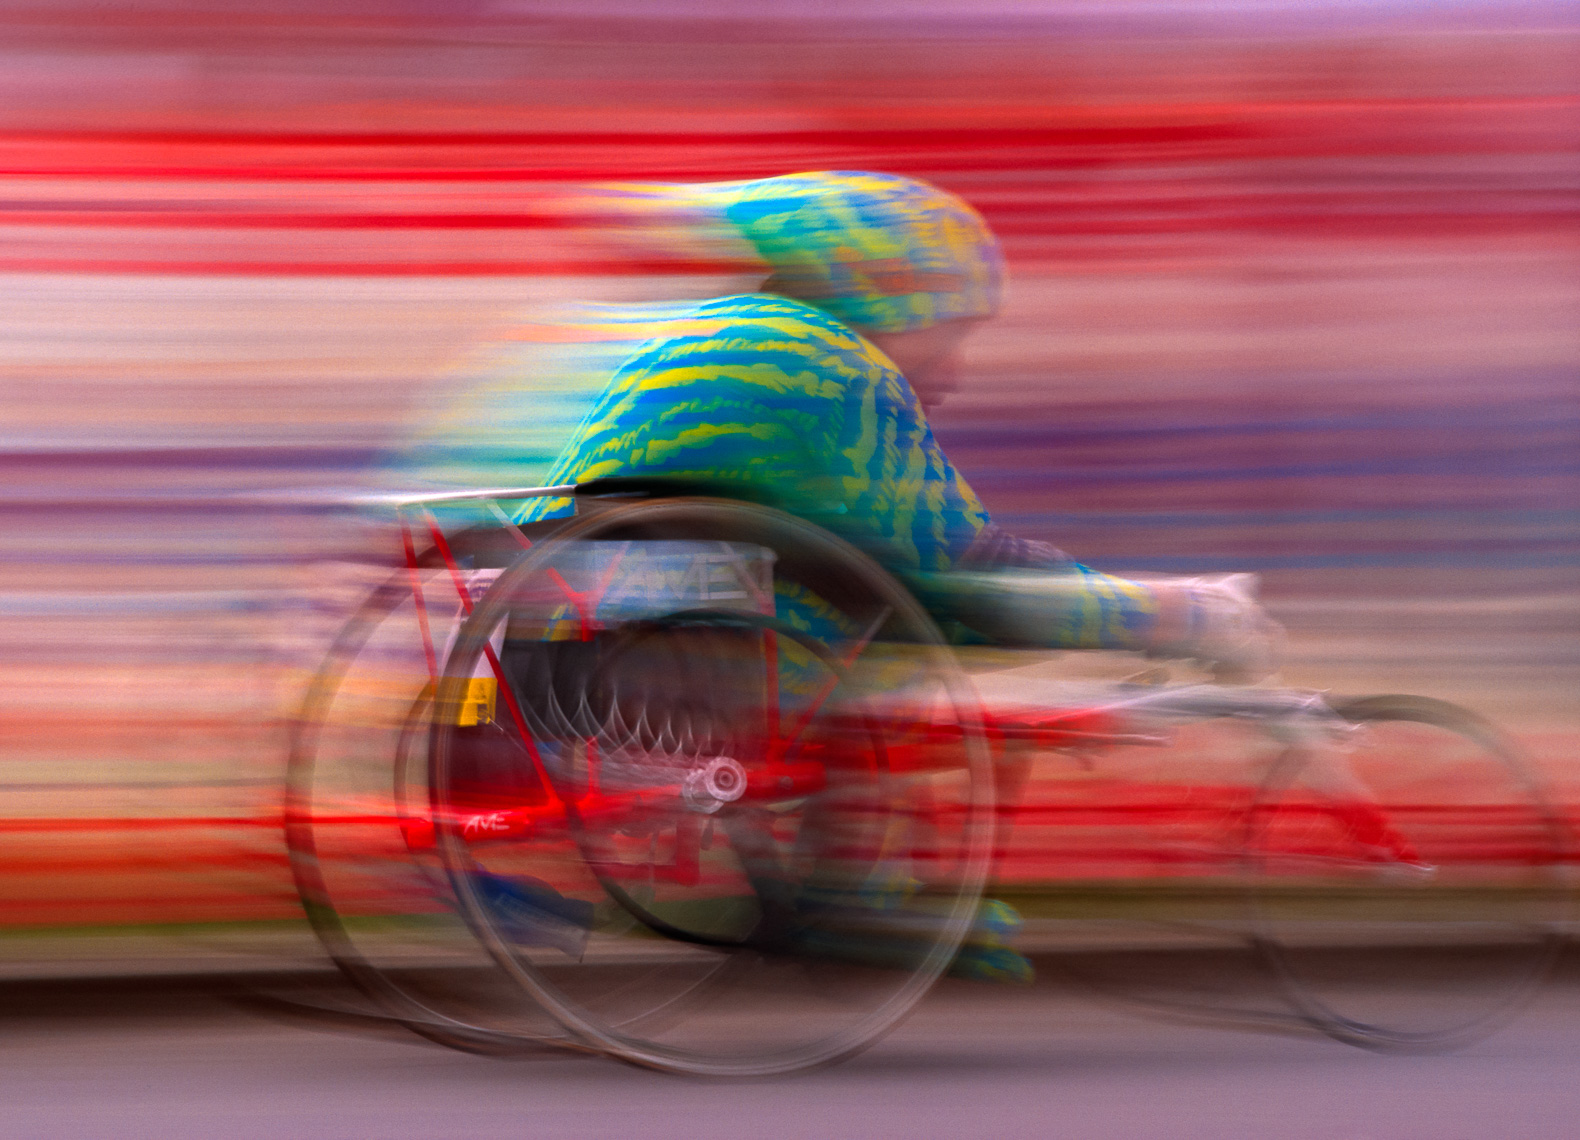 Wheelchair Racer in Motion